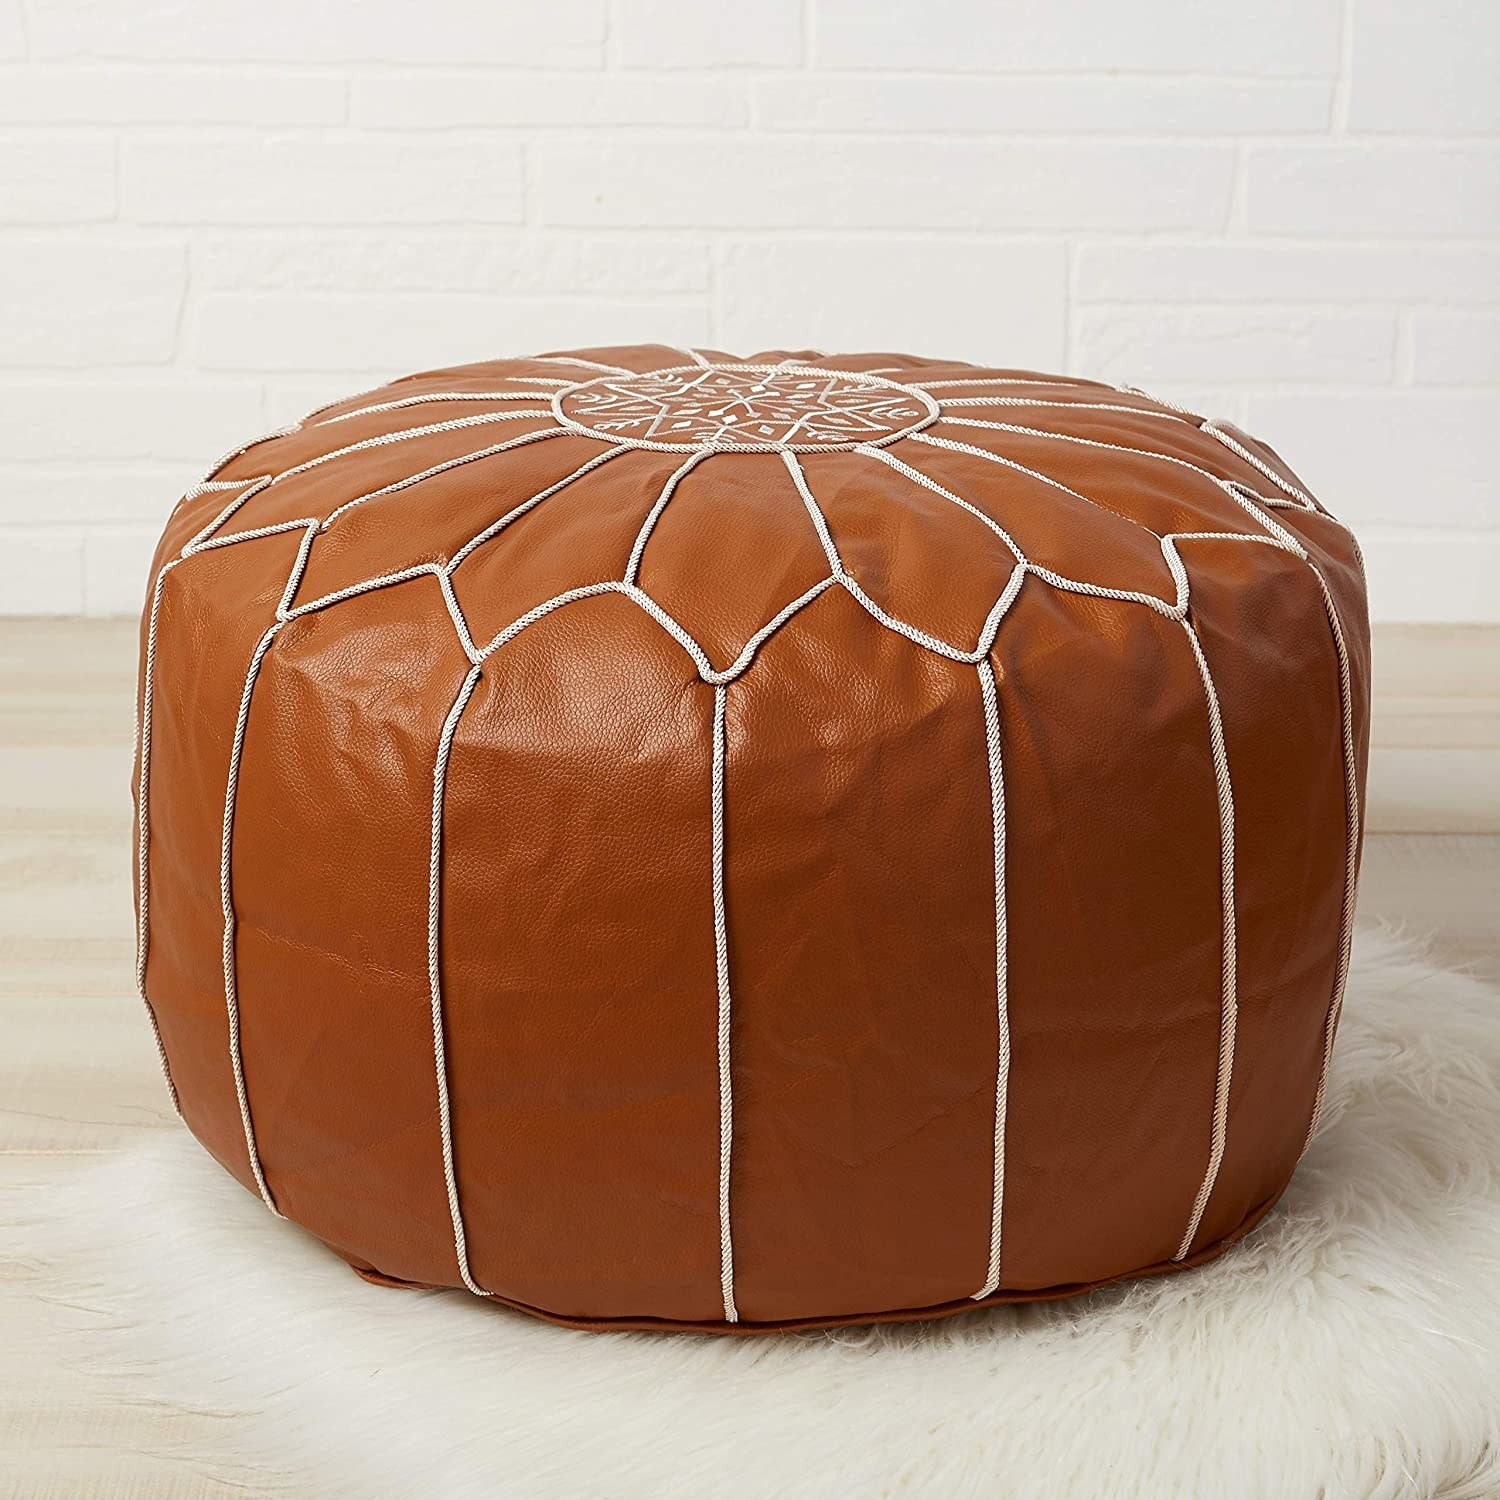 Red leather pouf with white cord details